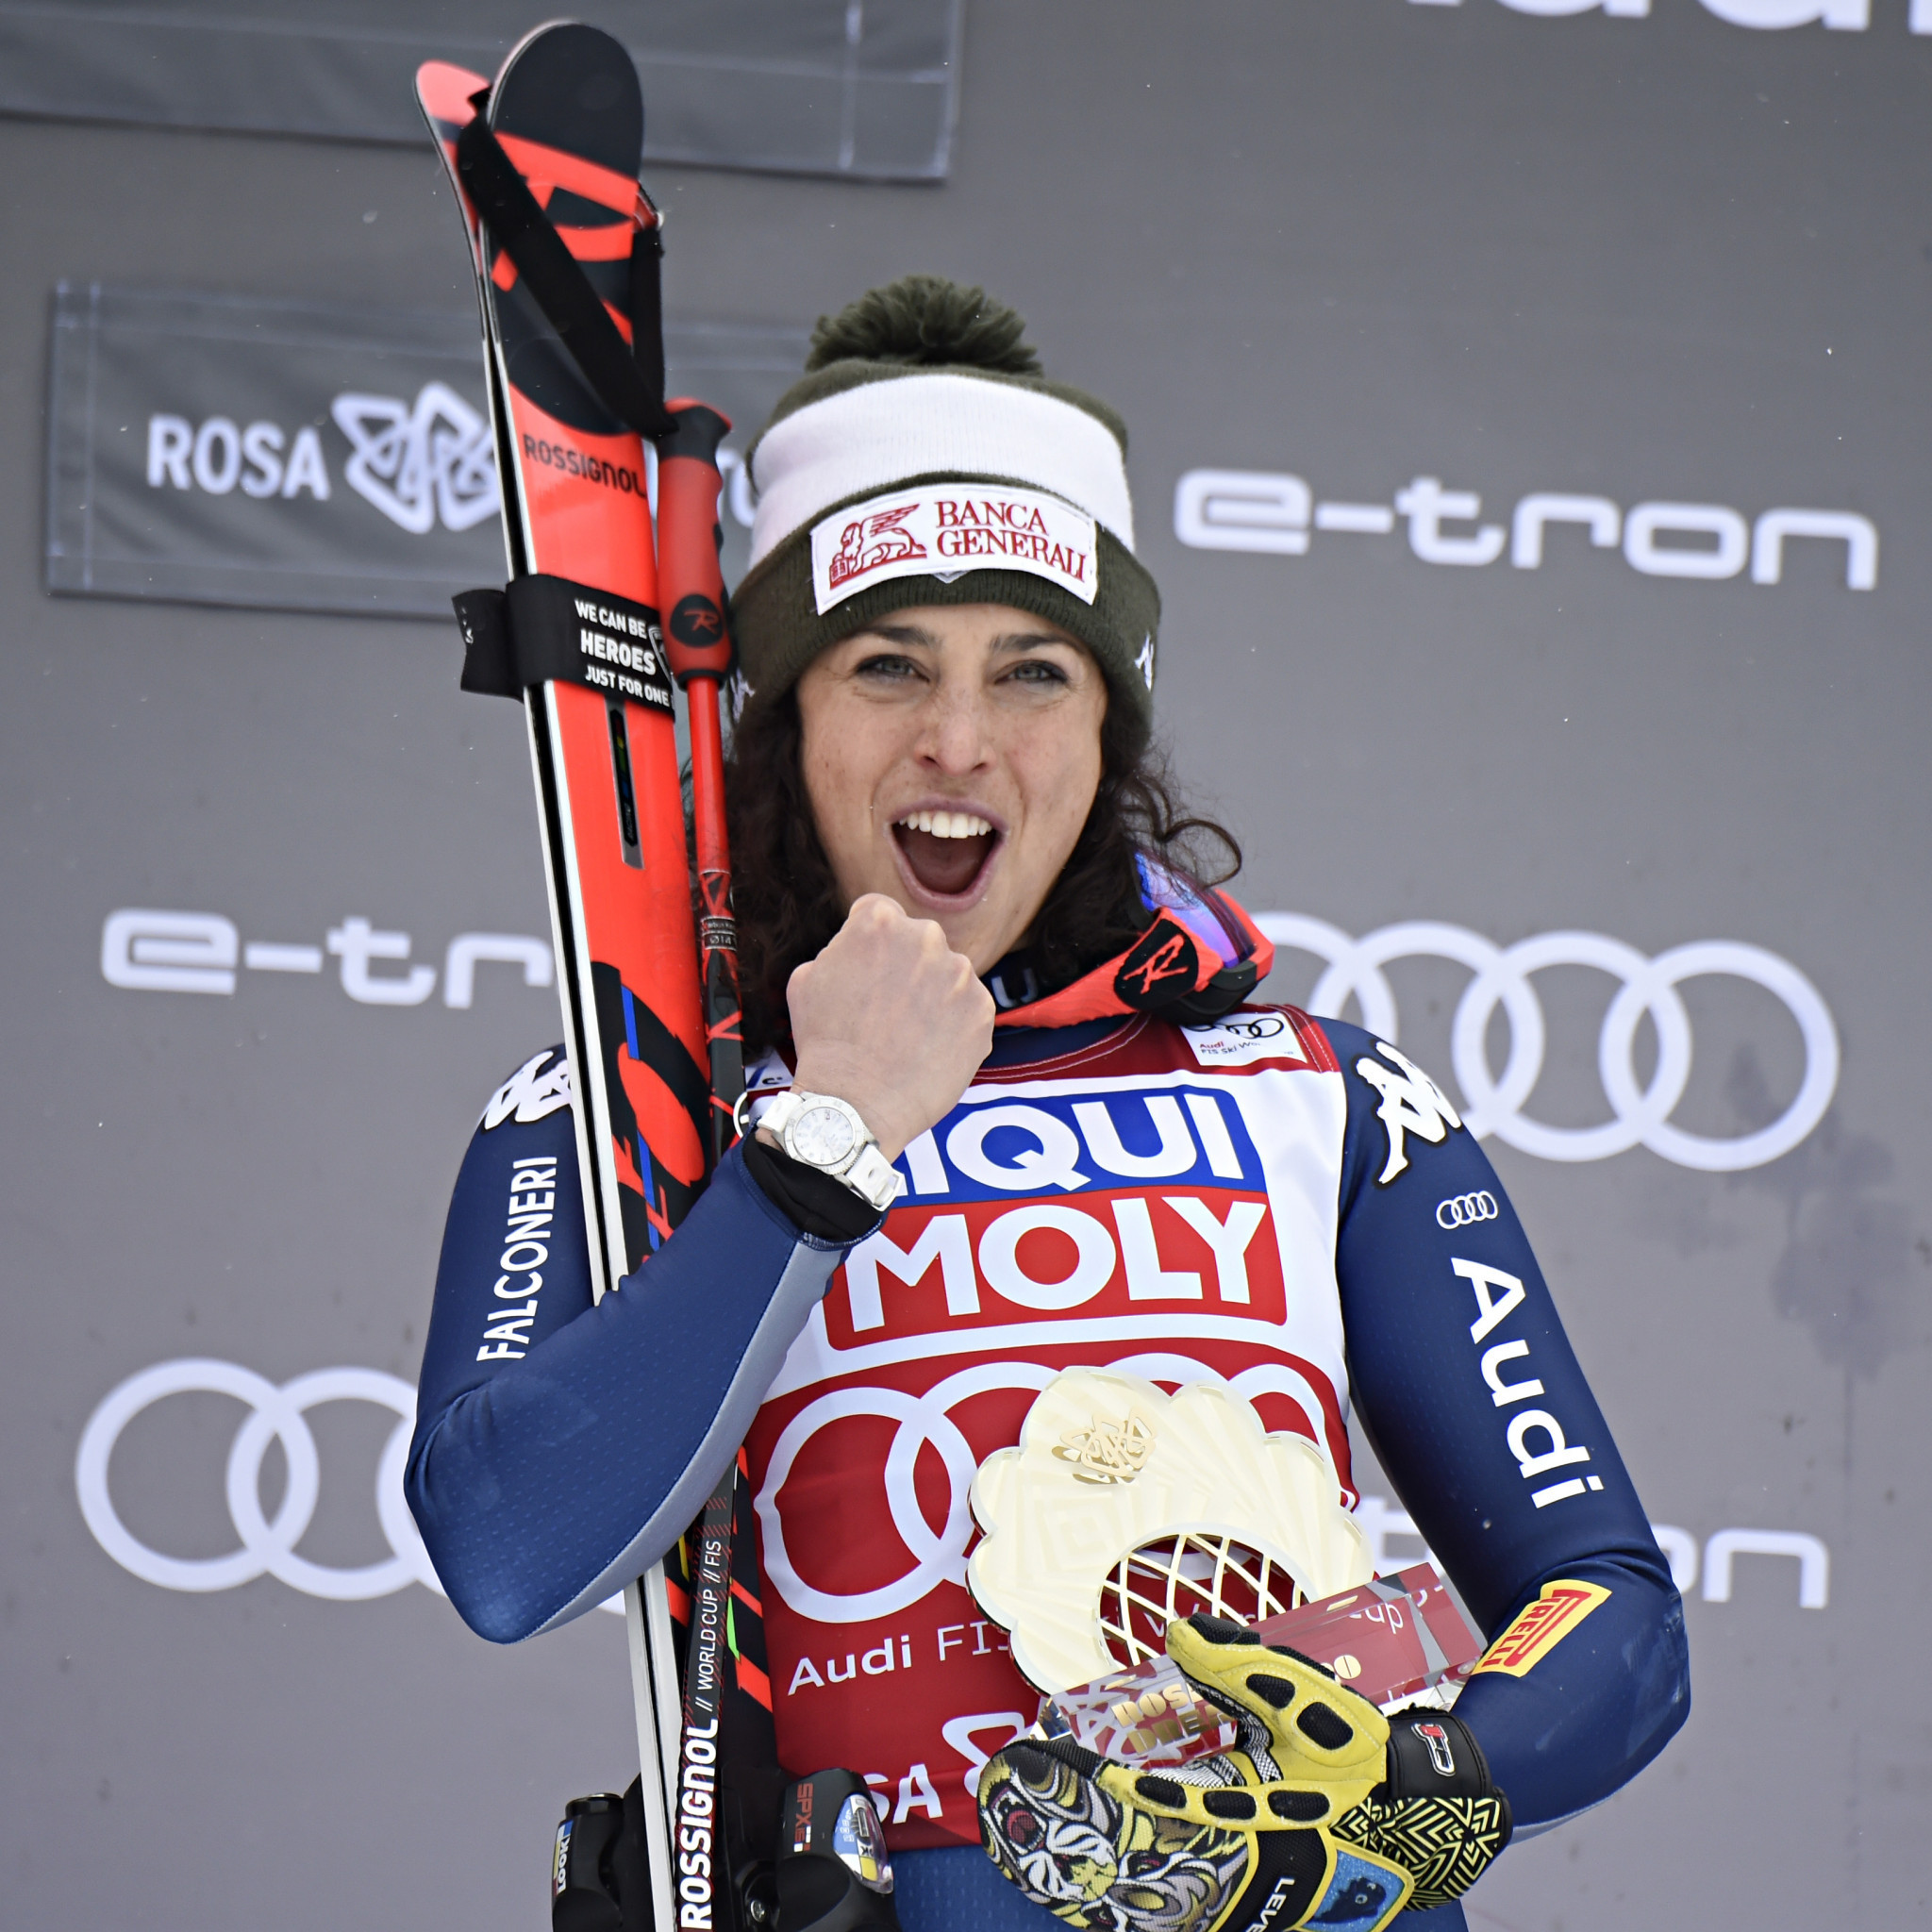 Federica Brignone was unstoppable in Russia and will look to win two super-G races on the bounce in Germany ©Getty Images